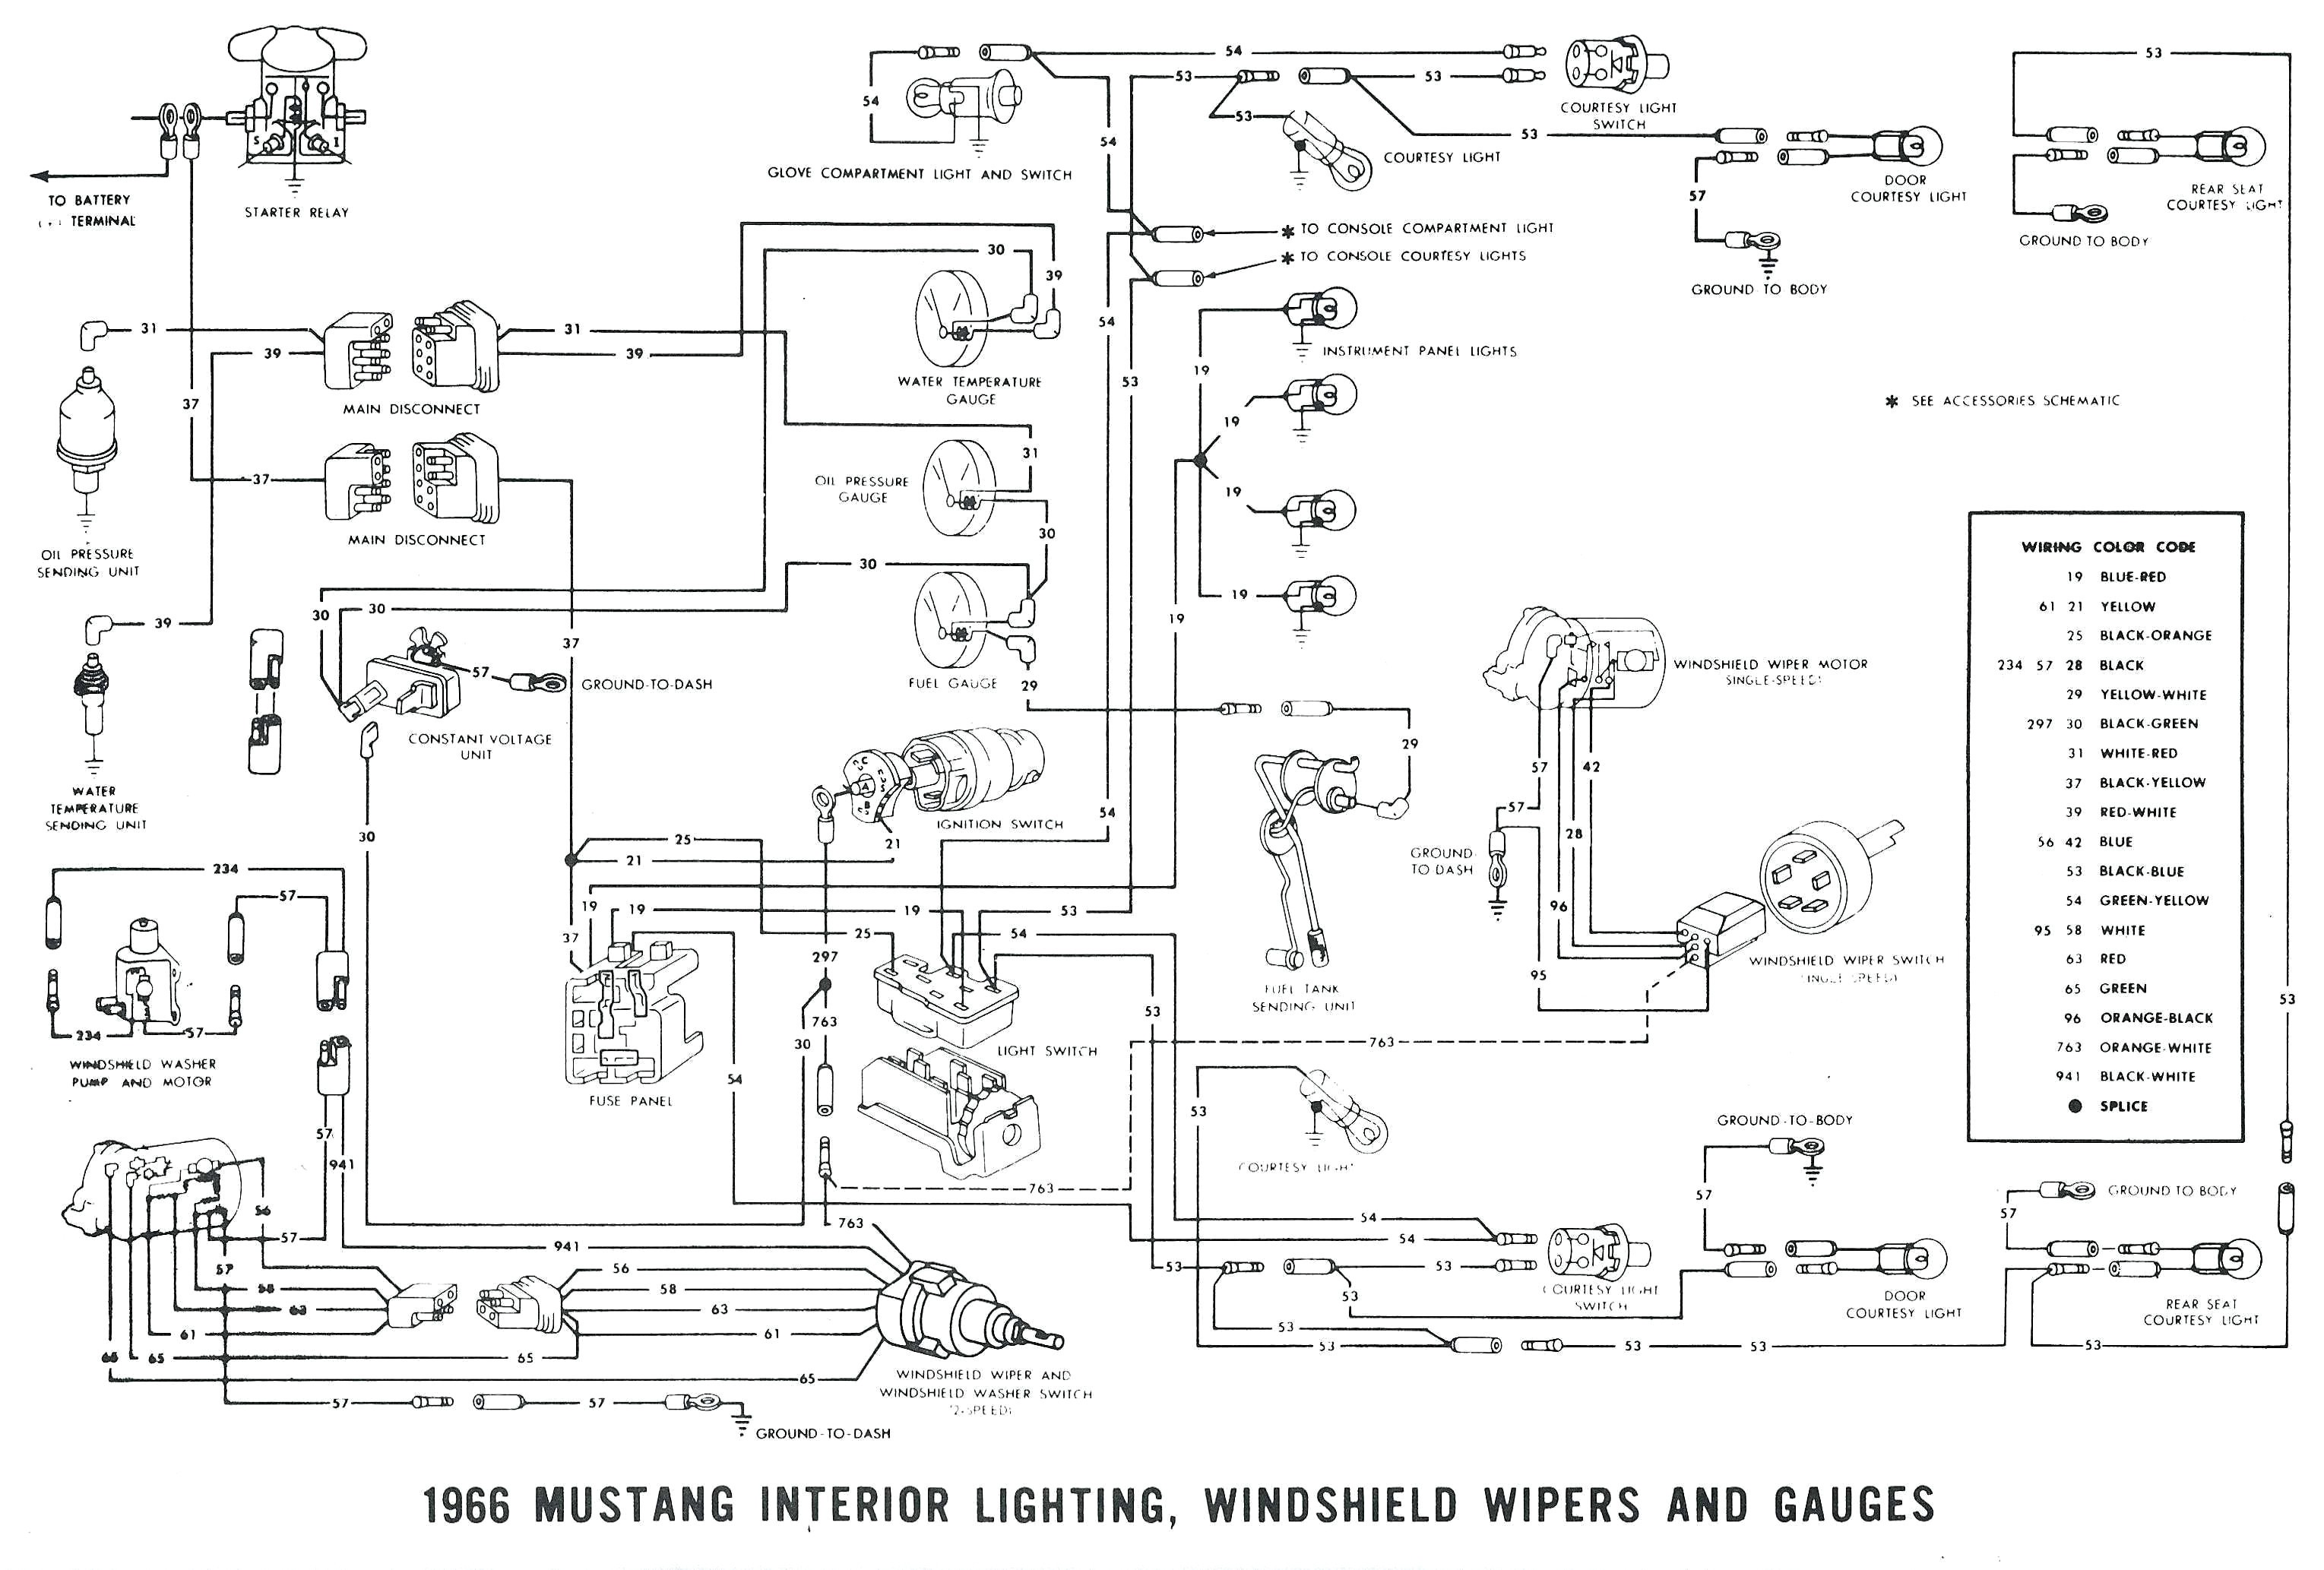 Porsche 944 Engine Diagram Porsche 944 Turbo Dme Wiring Diagram Worksheet and Wiring Diagram • Of Porsche 944 Engine Diagram